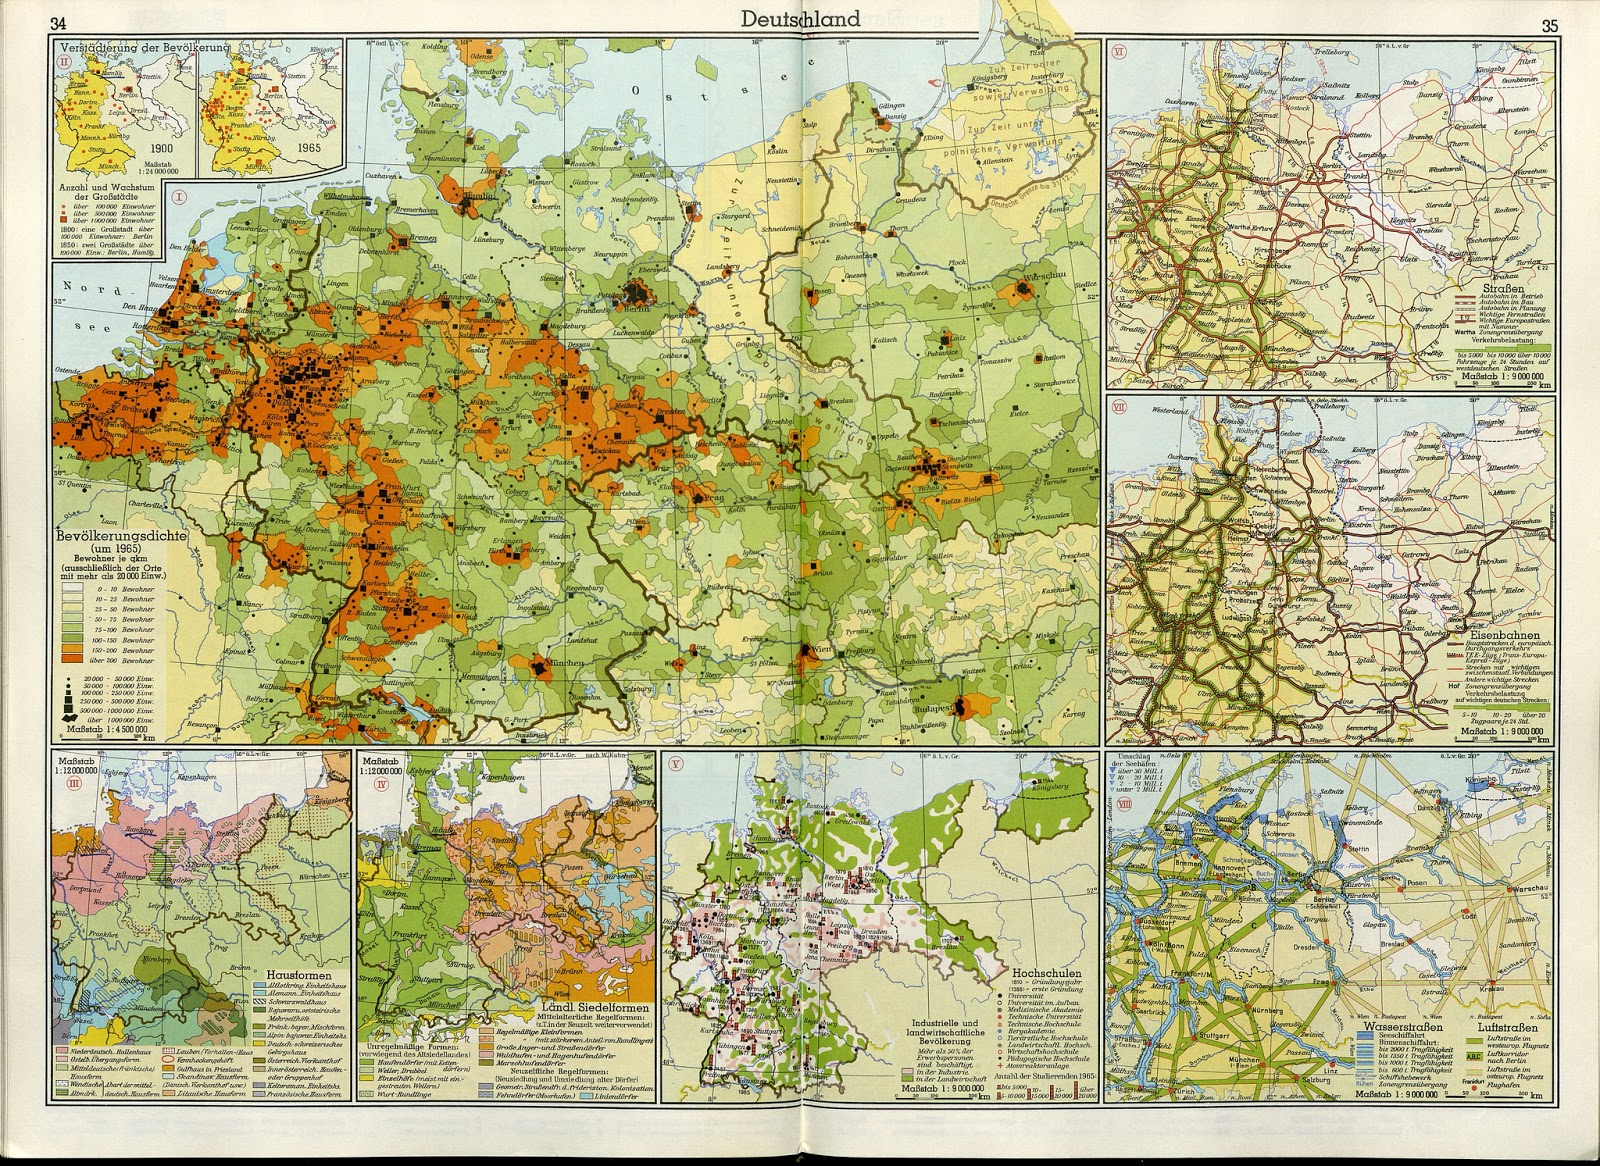 The last official German map claiming parts of Poland (1970)